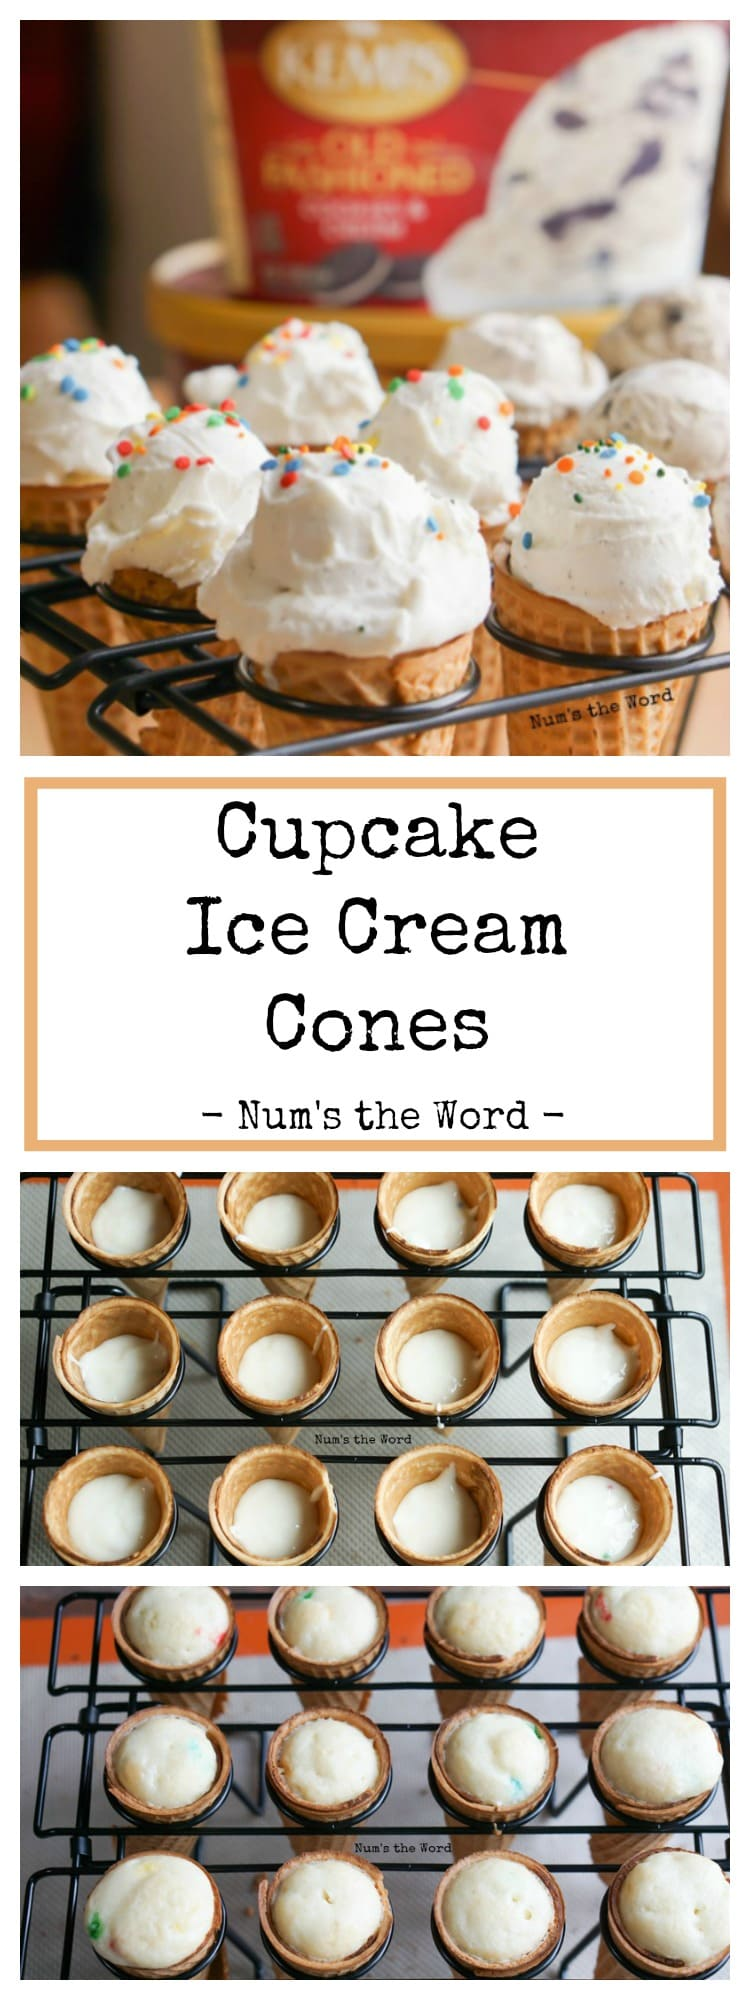 Cupcake Ice Cream Cones